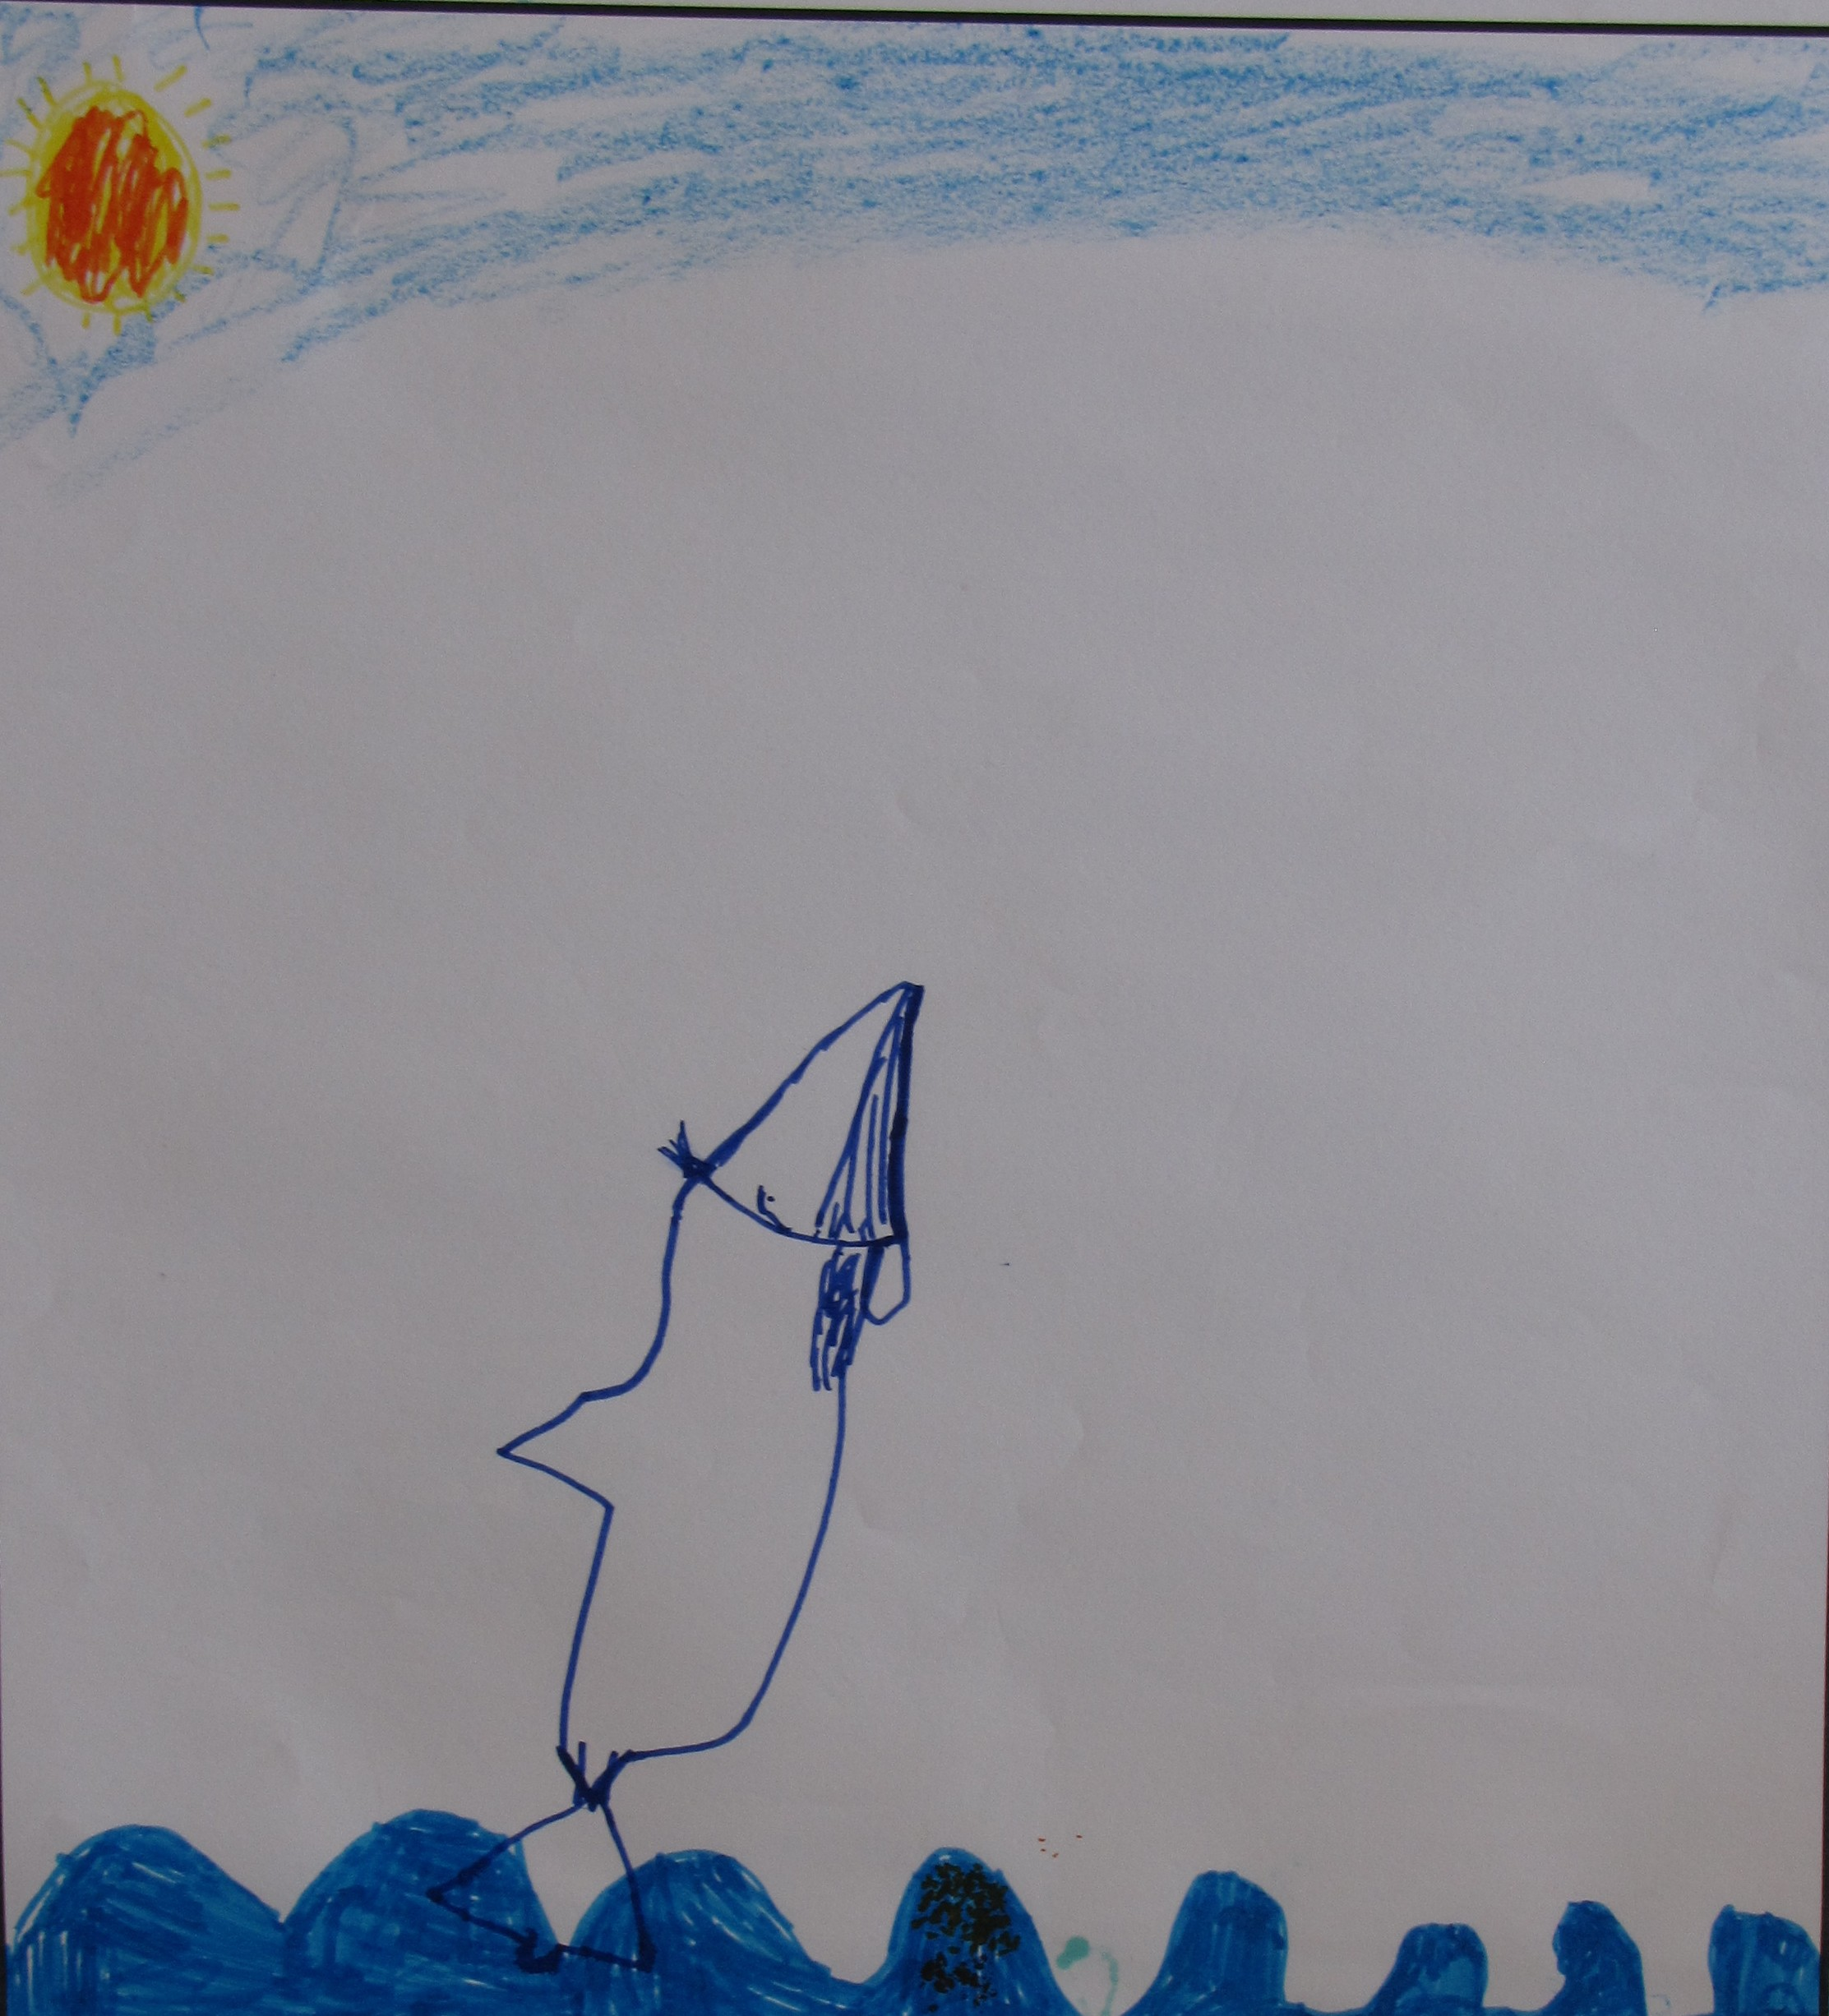 'Highlander' by Jessica McNeilly, Age 7.